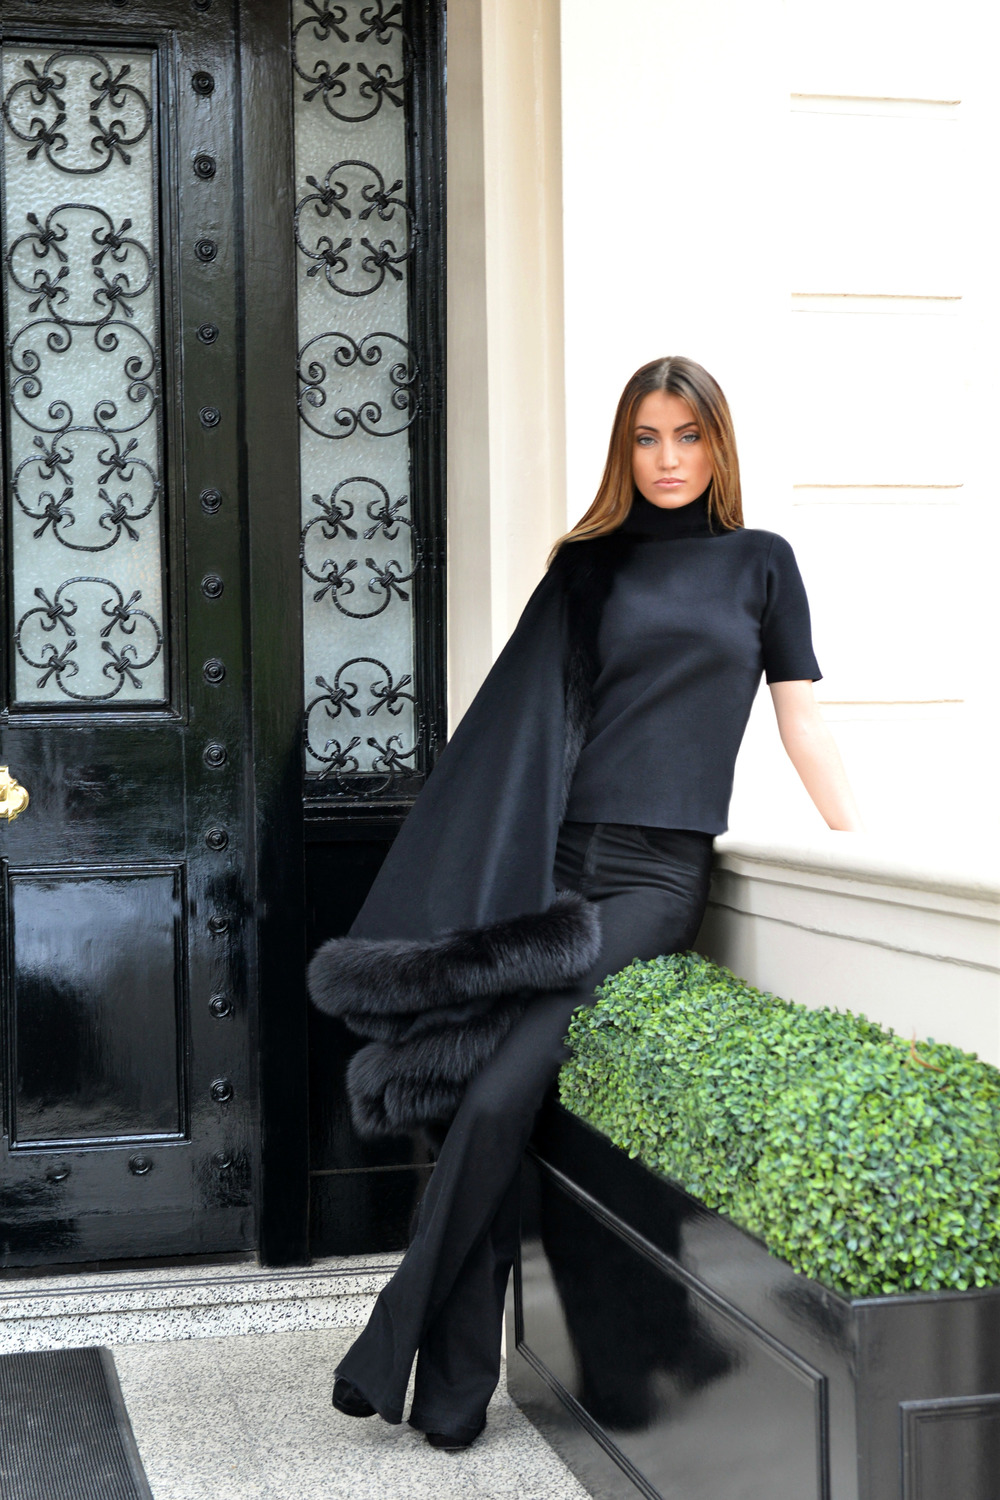 #photo (5) BlackFriday OOTD. Sharp and modern all black look. Ultra soft black cashmere cape with fur. Worn by Fashion Blogger Maureen Sophie Kragt from TheVanillawoods Blog.